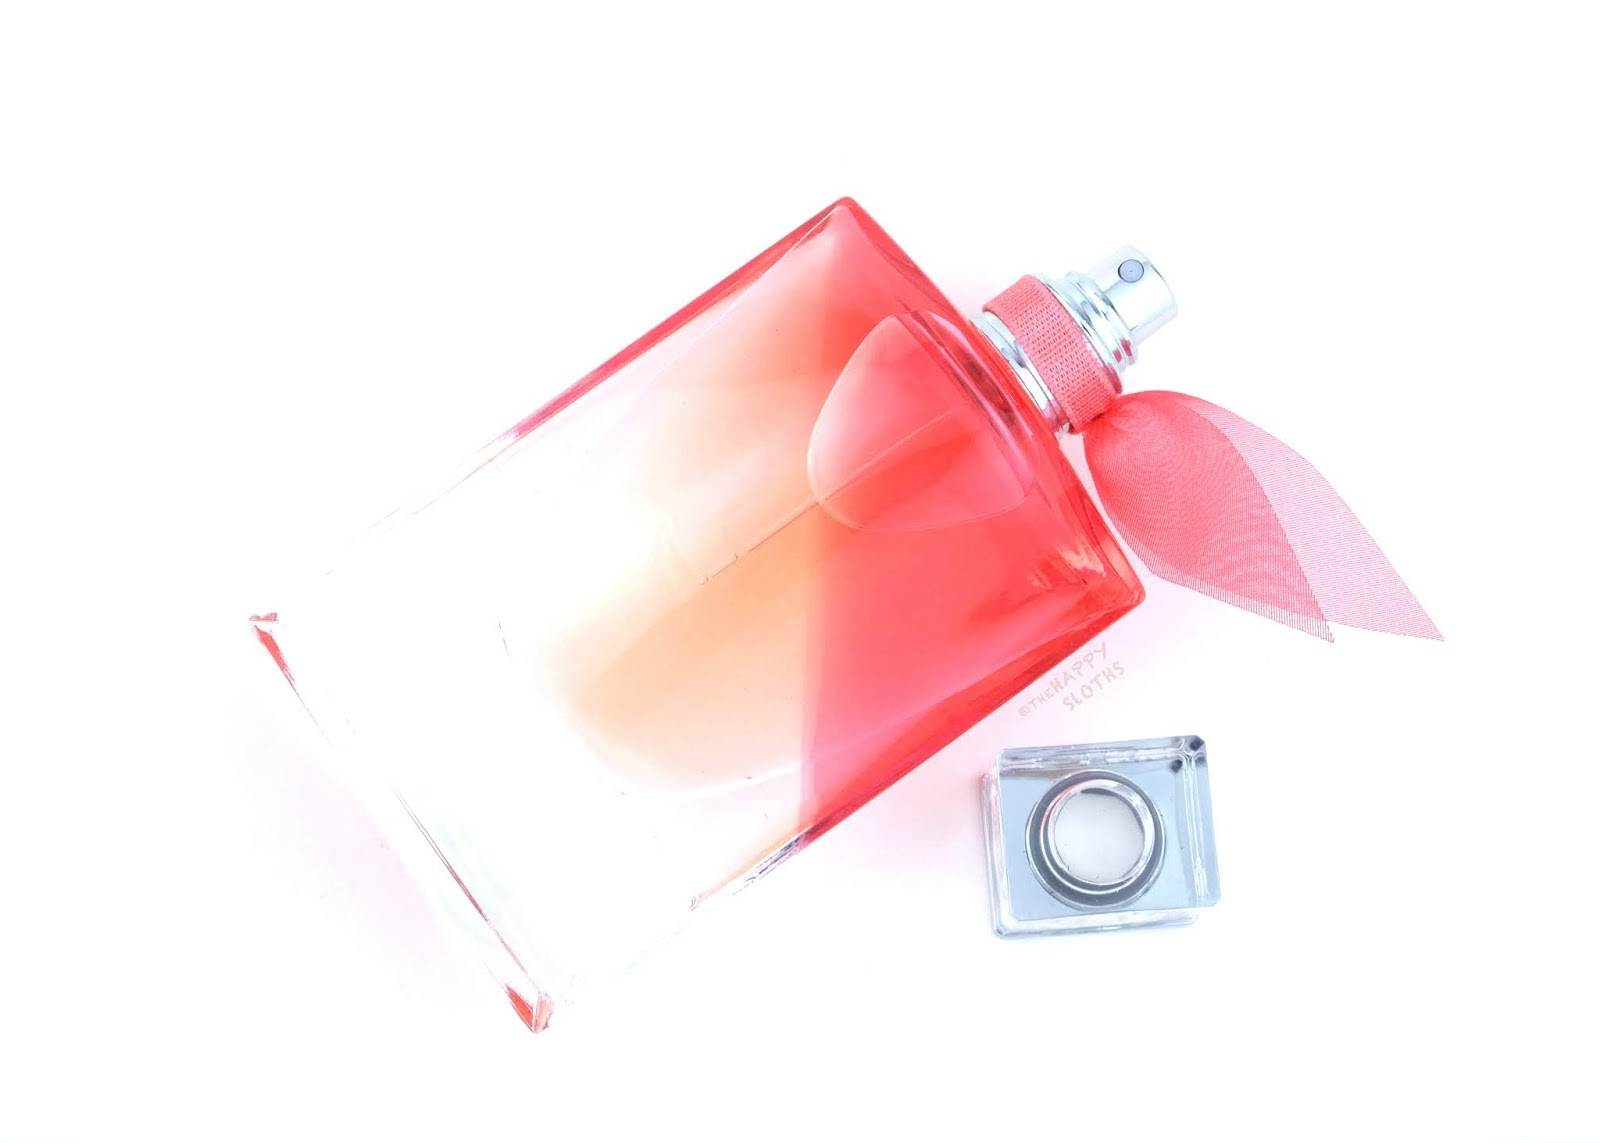 Image De Rose Lancome La Vie Est Belle En Rose L Eau De Toilette Review The